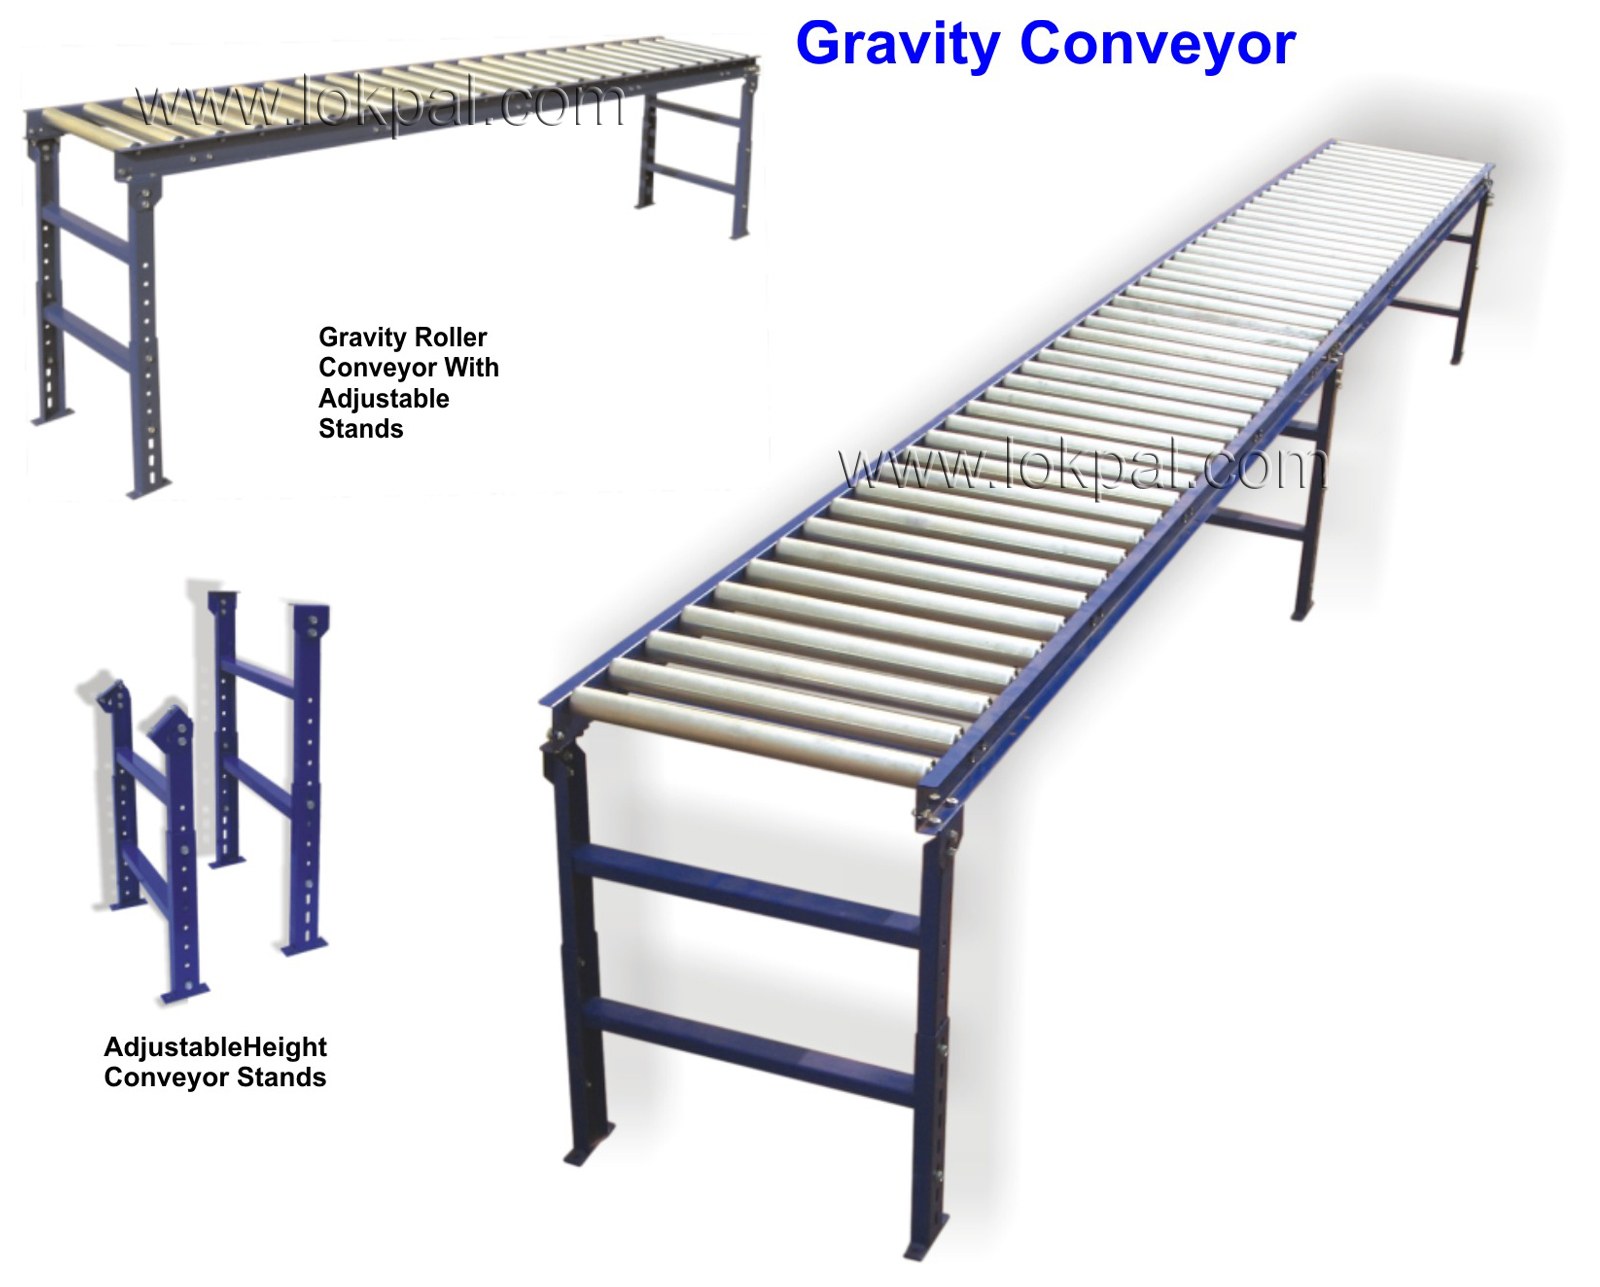 Gravity Conveyors, Gravity Conveyors Wholesalers, Gravity Conveyors, Suppliers, Gravity Conveyors Manufacturers, Gravity Conveyor, Distributor, Wholesaler, Delhi NCR, Noida, India